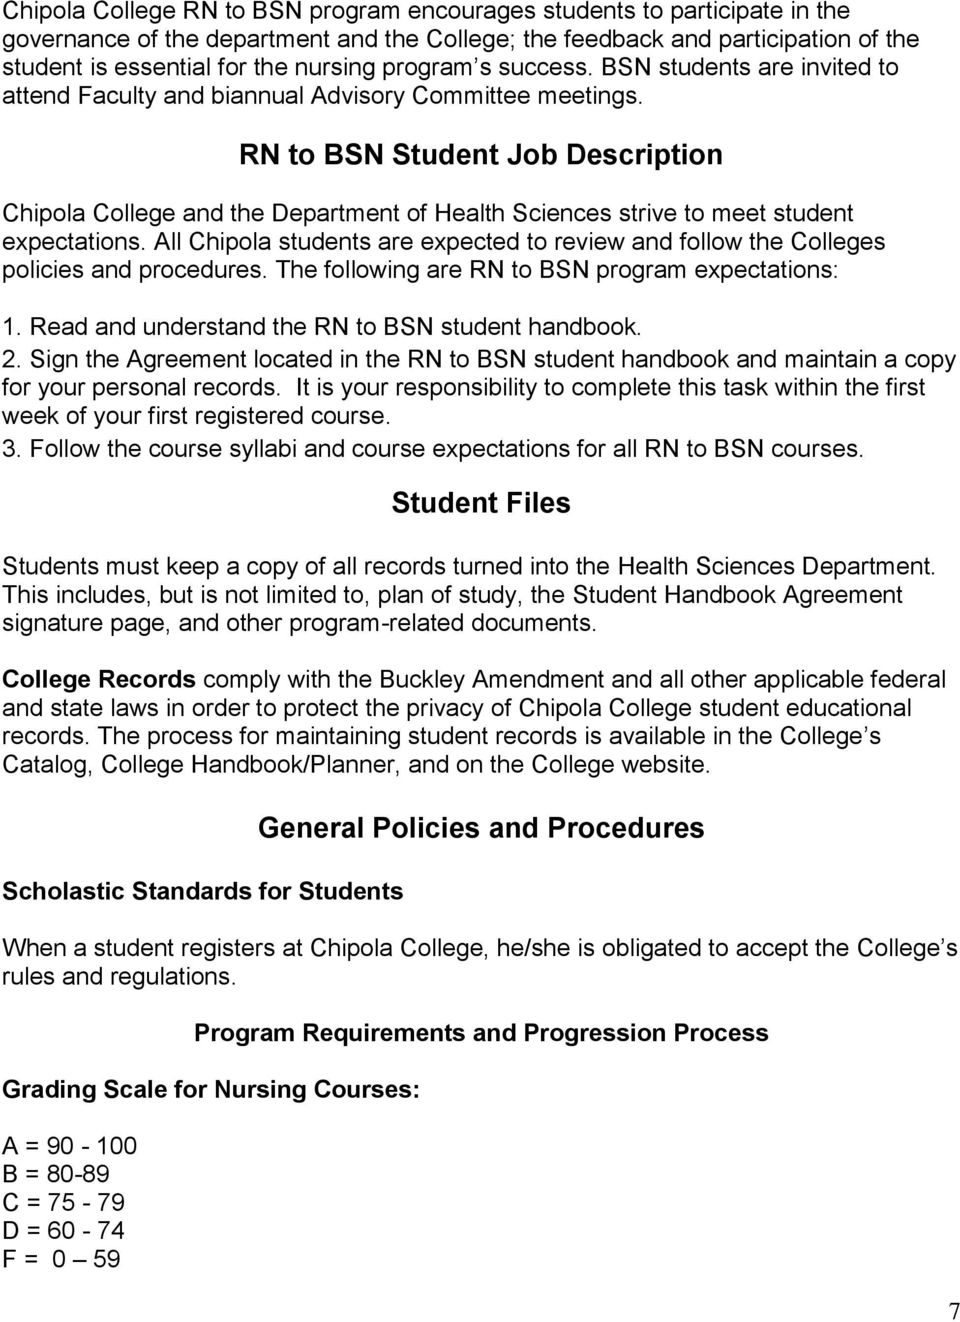 RN to BSN Student Job Description Chipola College and the Department of Health Sciences strive to meet student expectations.